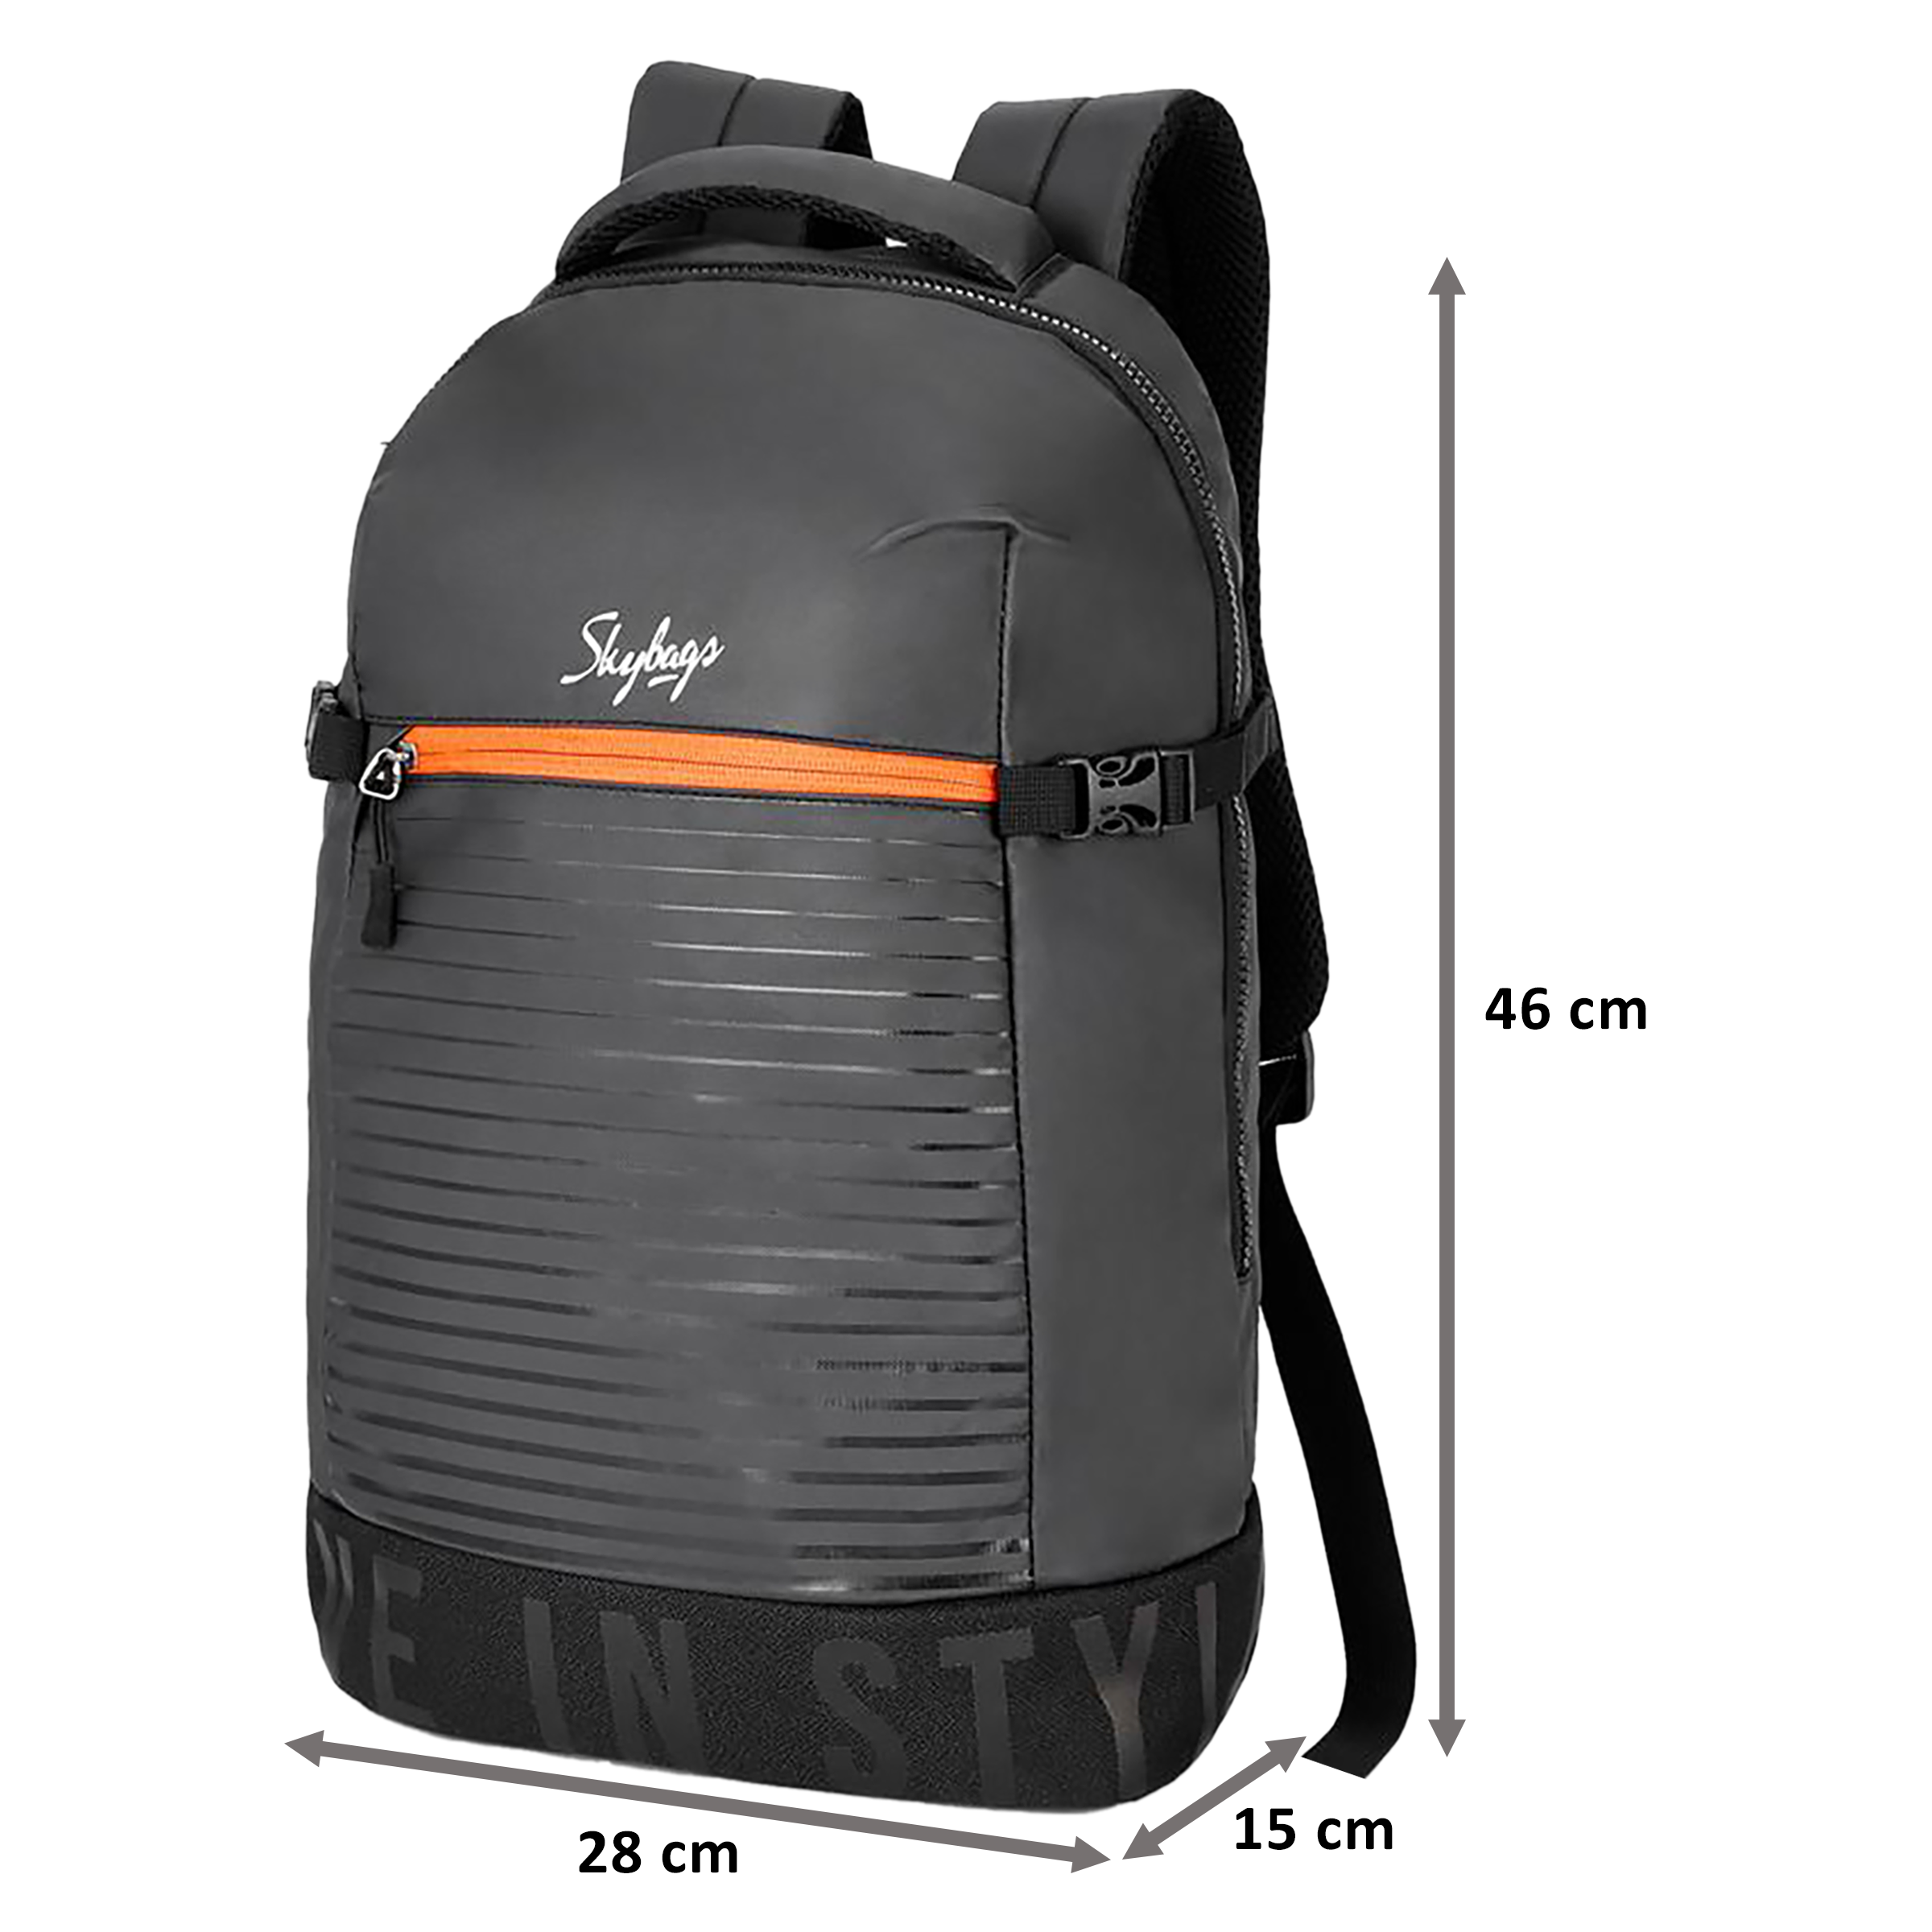 Sky Bags Boho 01 23 Litres Thermoplastic Elastomers Backpack (Rain Cover, BPBOH1RBLK, Black)_2